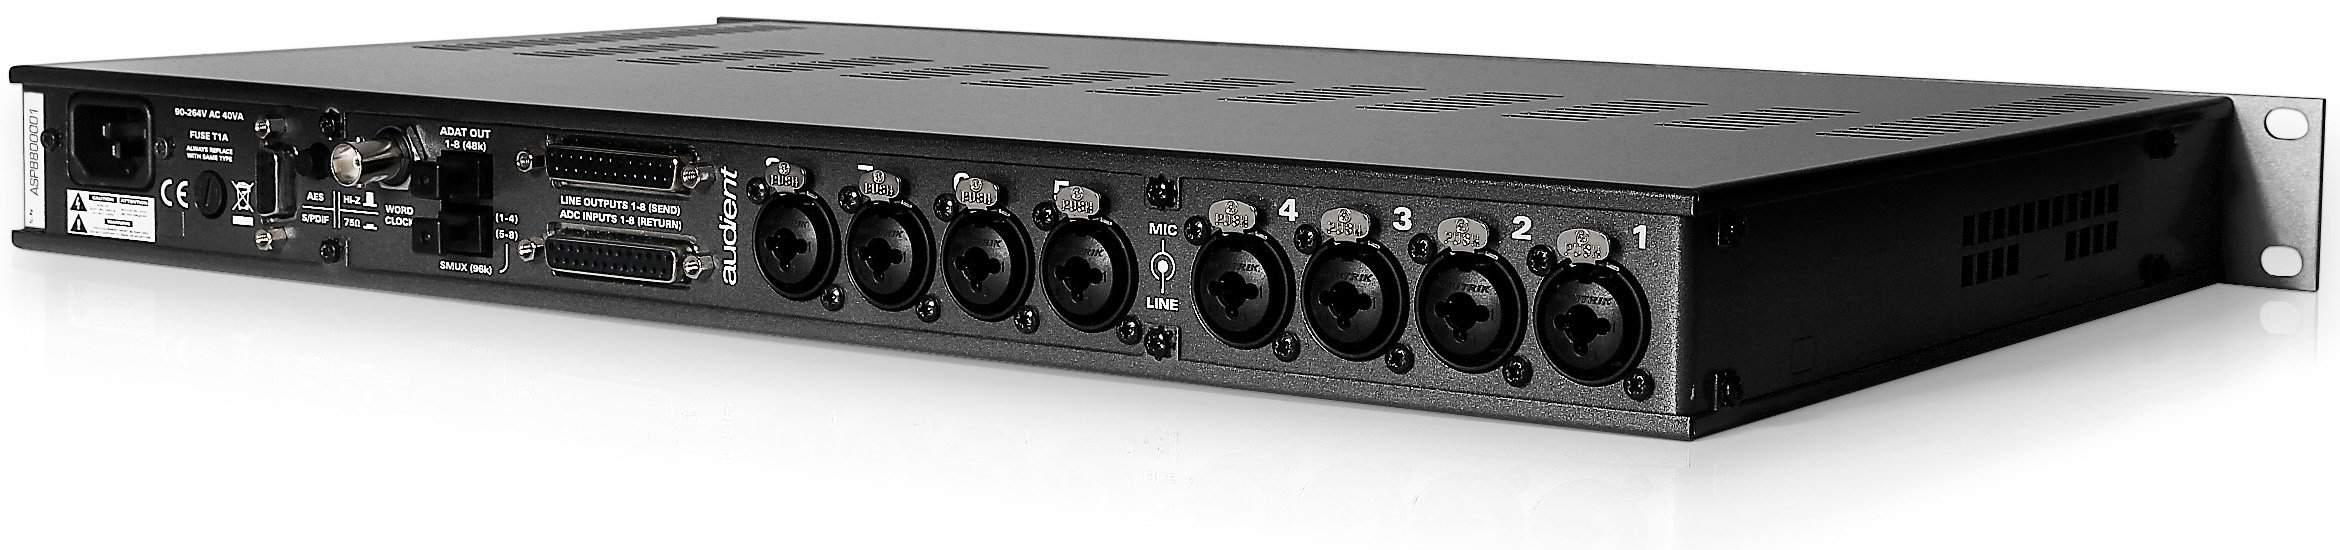 8 Channel Microphone Preamplifier and Analog / Digital Converter